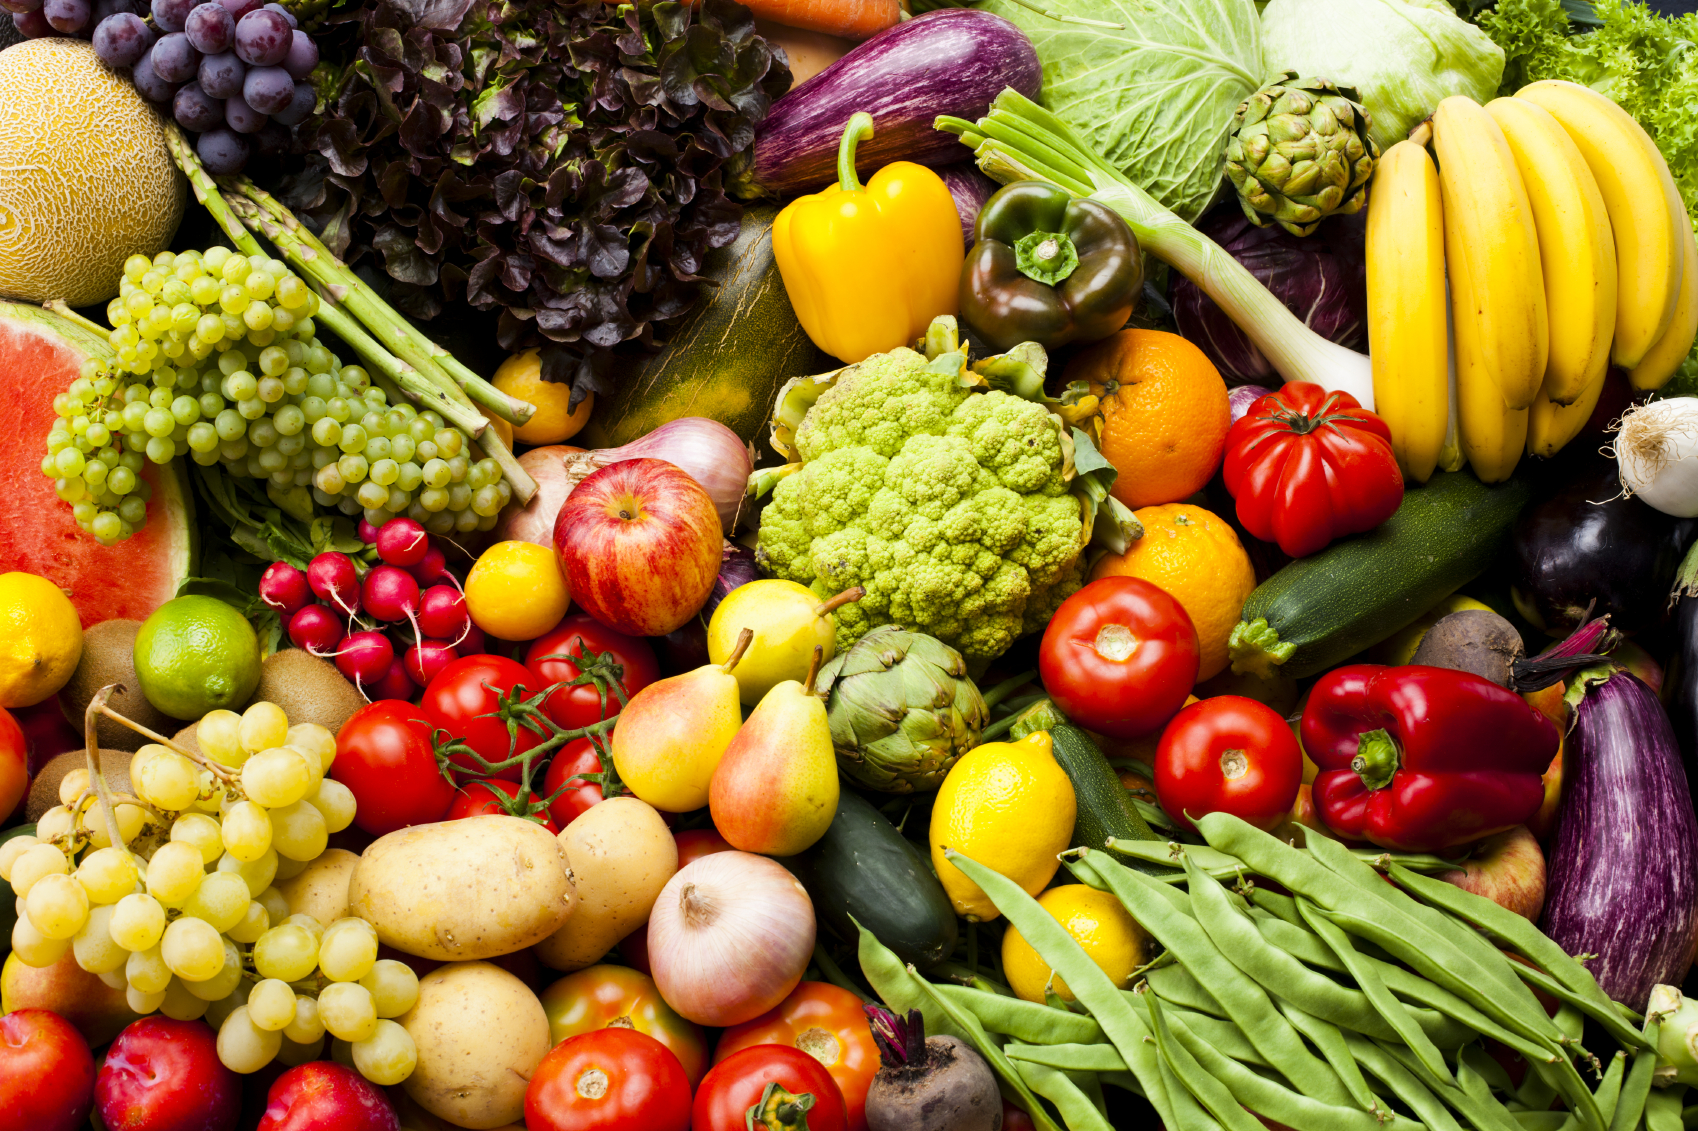 High-cost-of-fruit-and-vegetables-linked-to-higher-body-fat-in-young-children-study